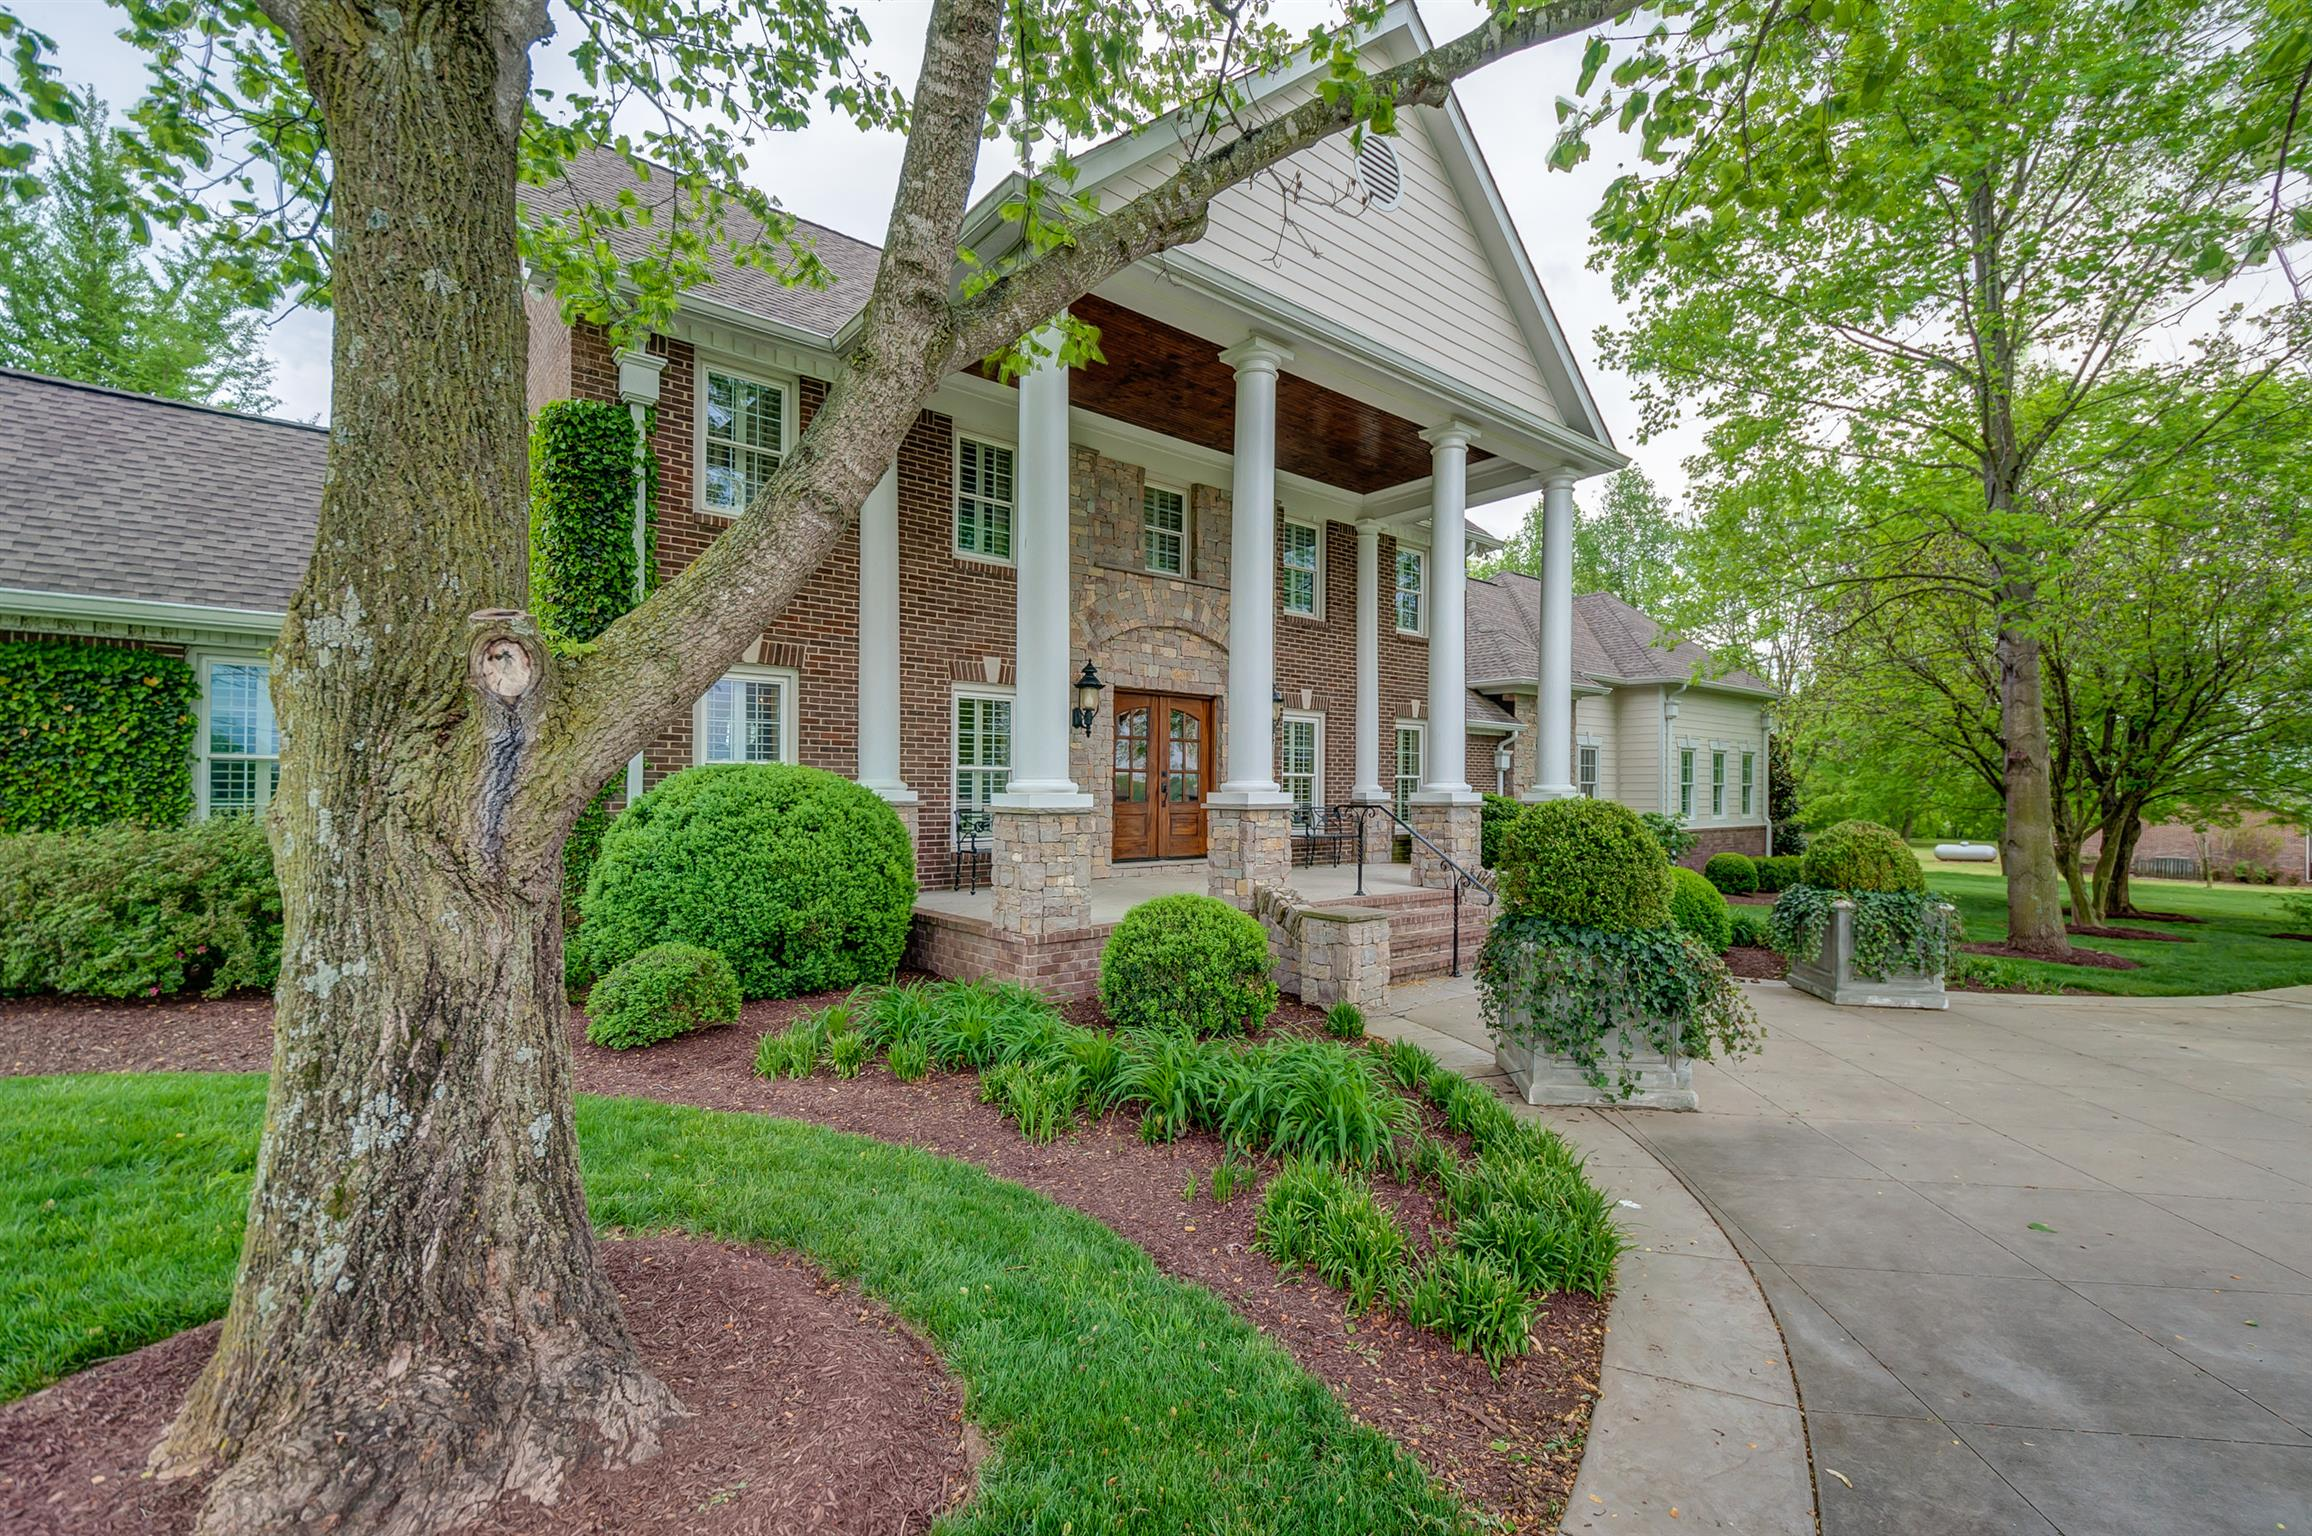 7167 Old Zion Rd, Columbia, TN 38401 - Columbia, TN real estate listing